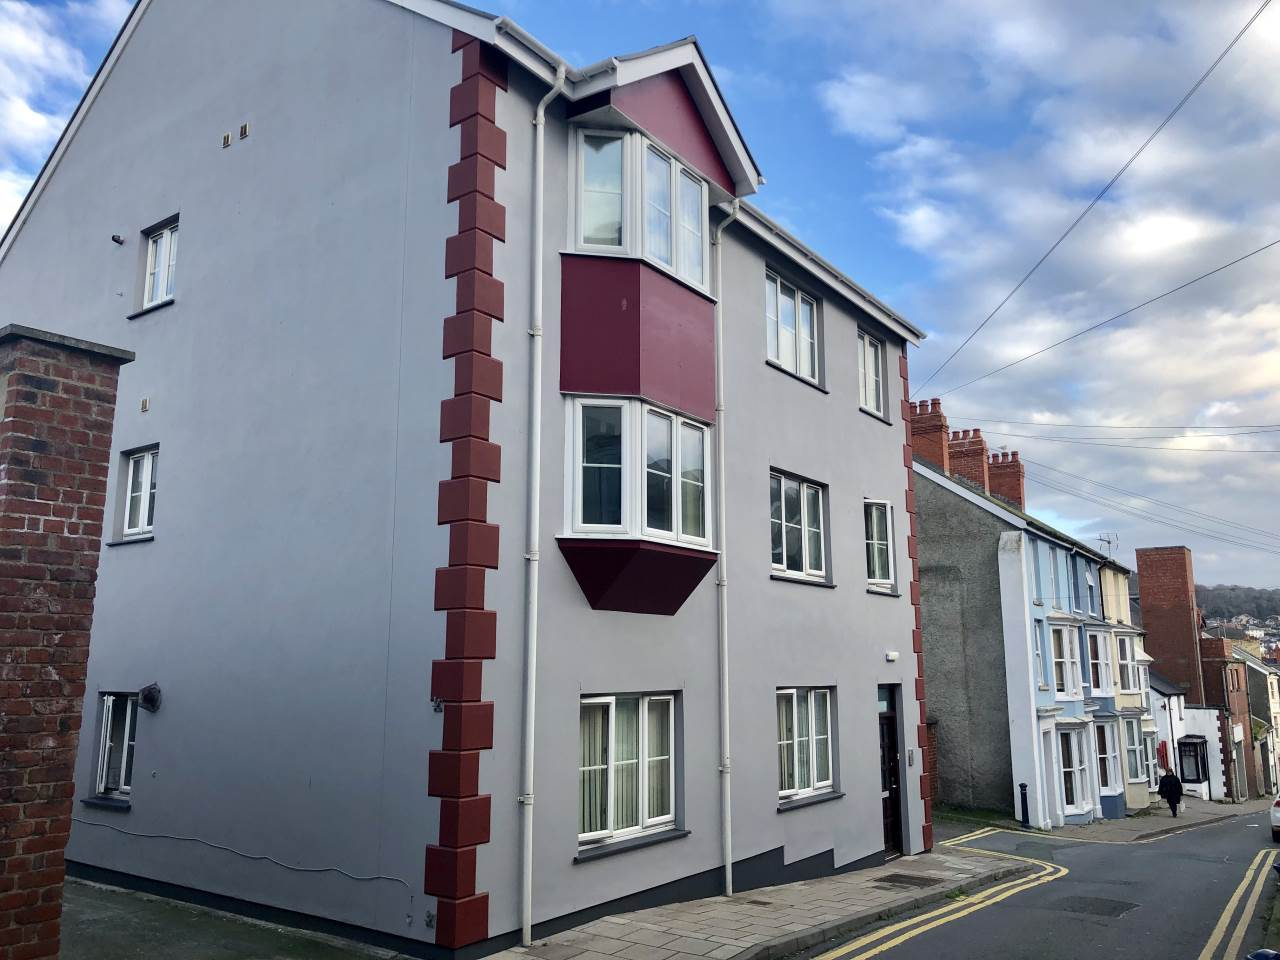 1 bed flat to rent in Queen Street, Aberystwyth, SY23